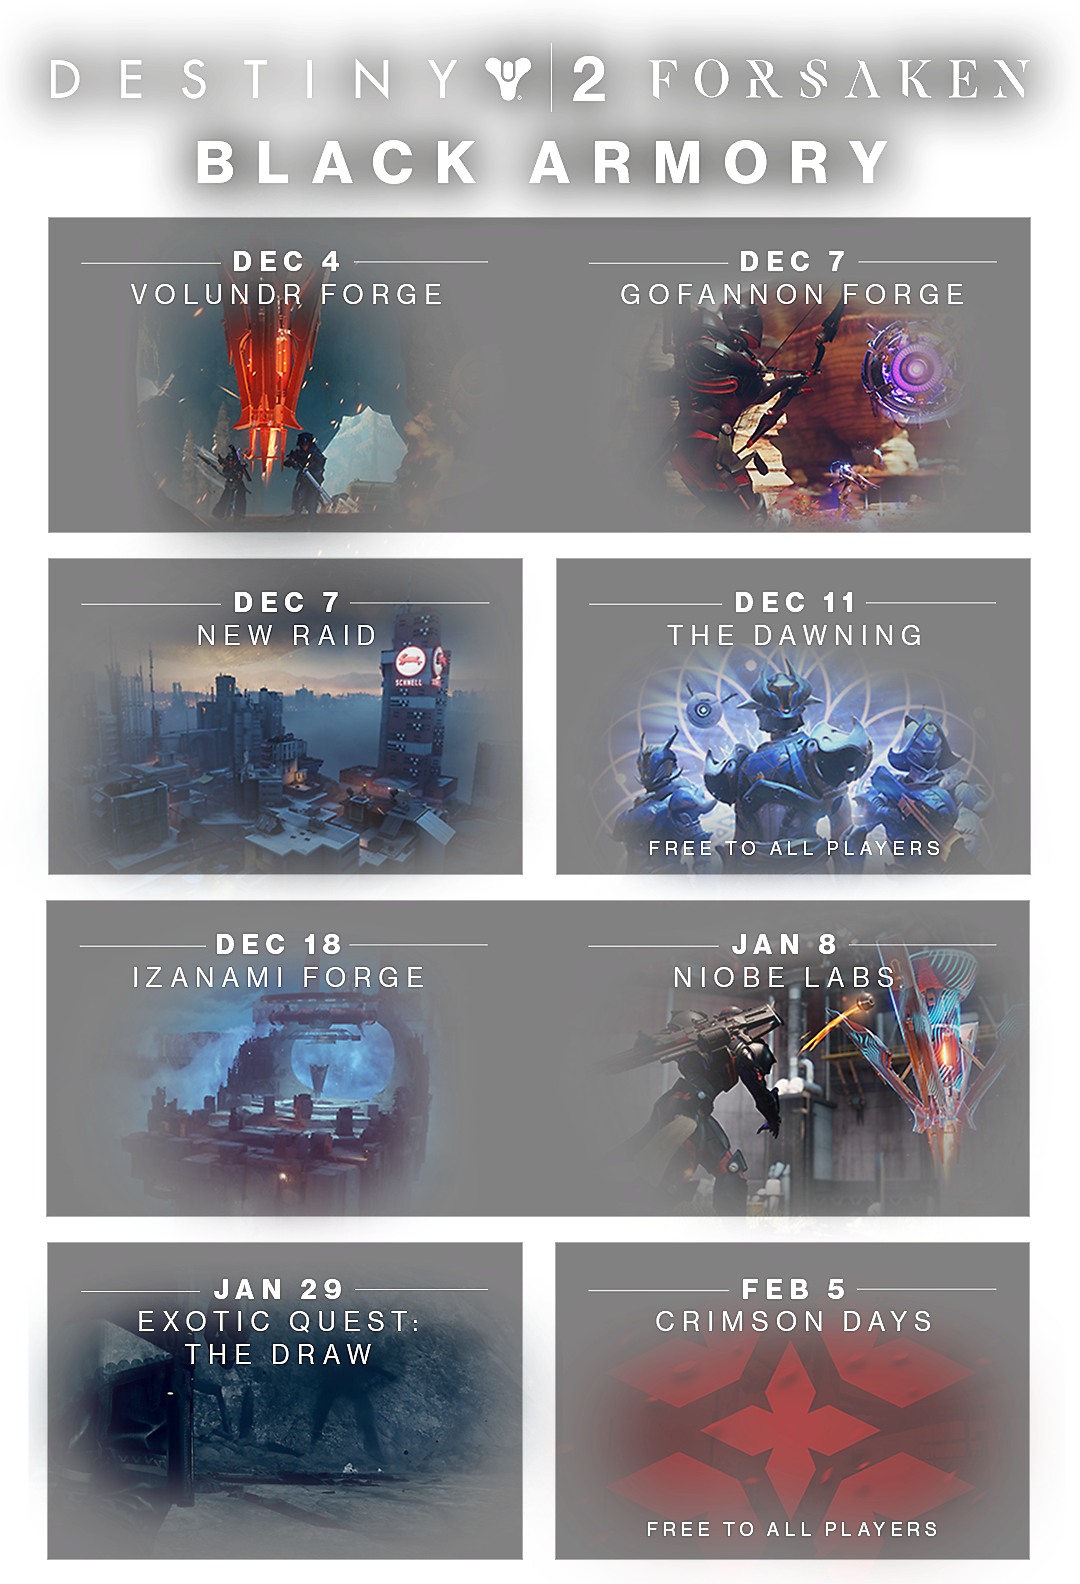 Destiny 2 Annual Pass Black Armory Content